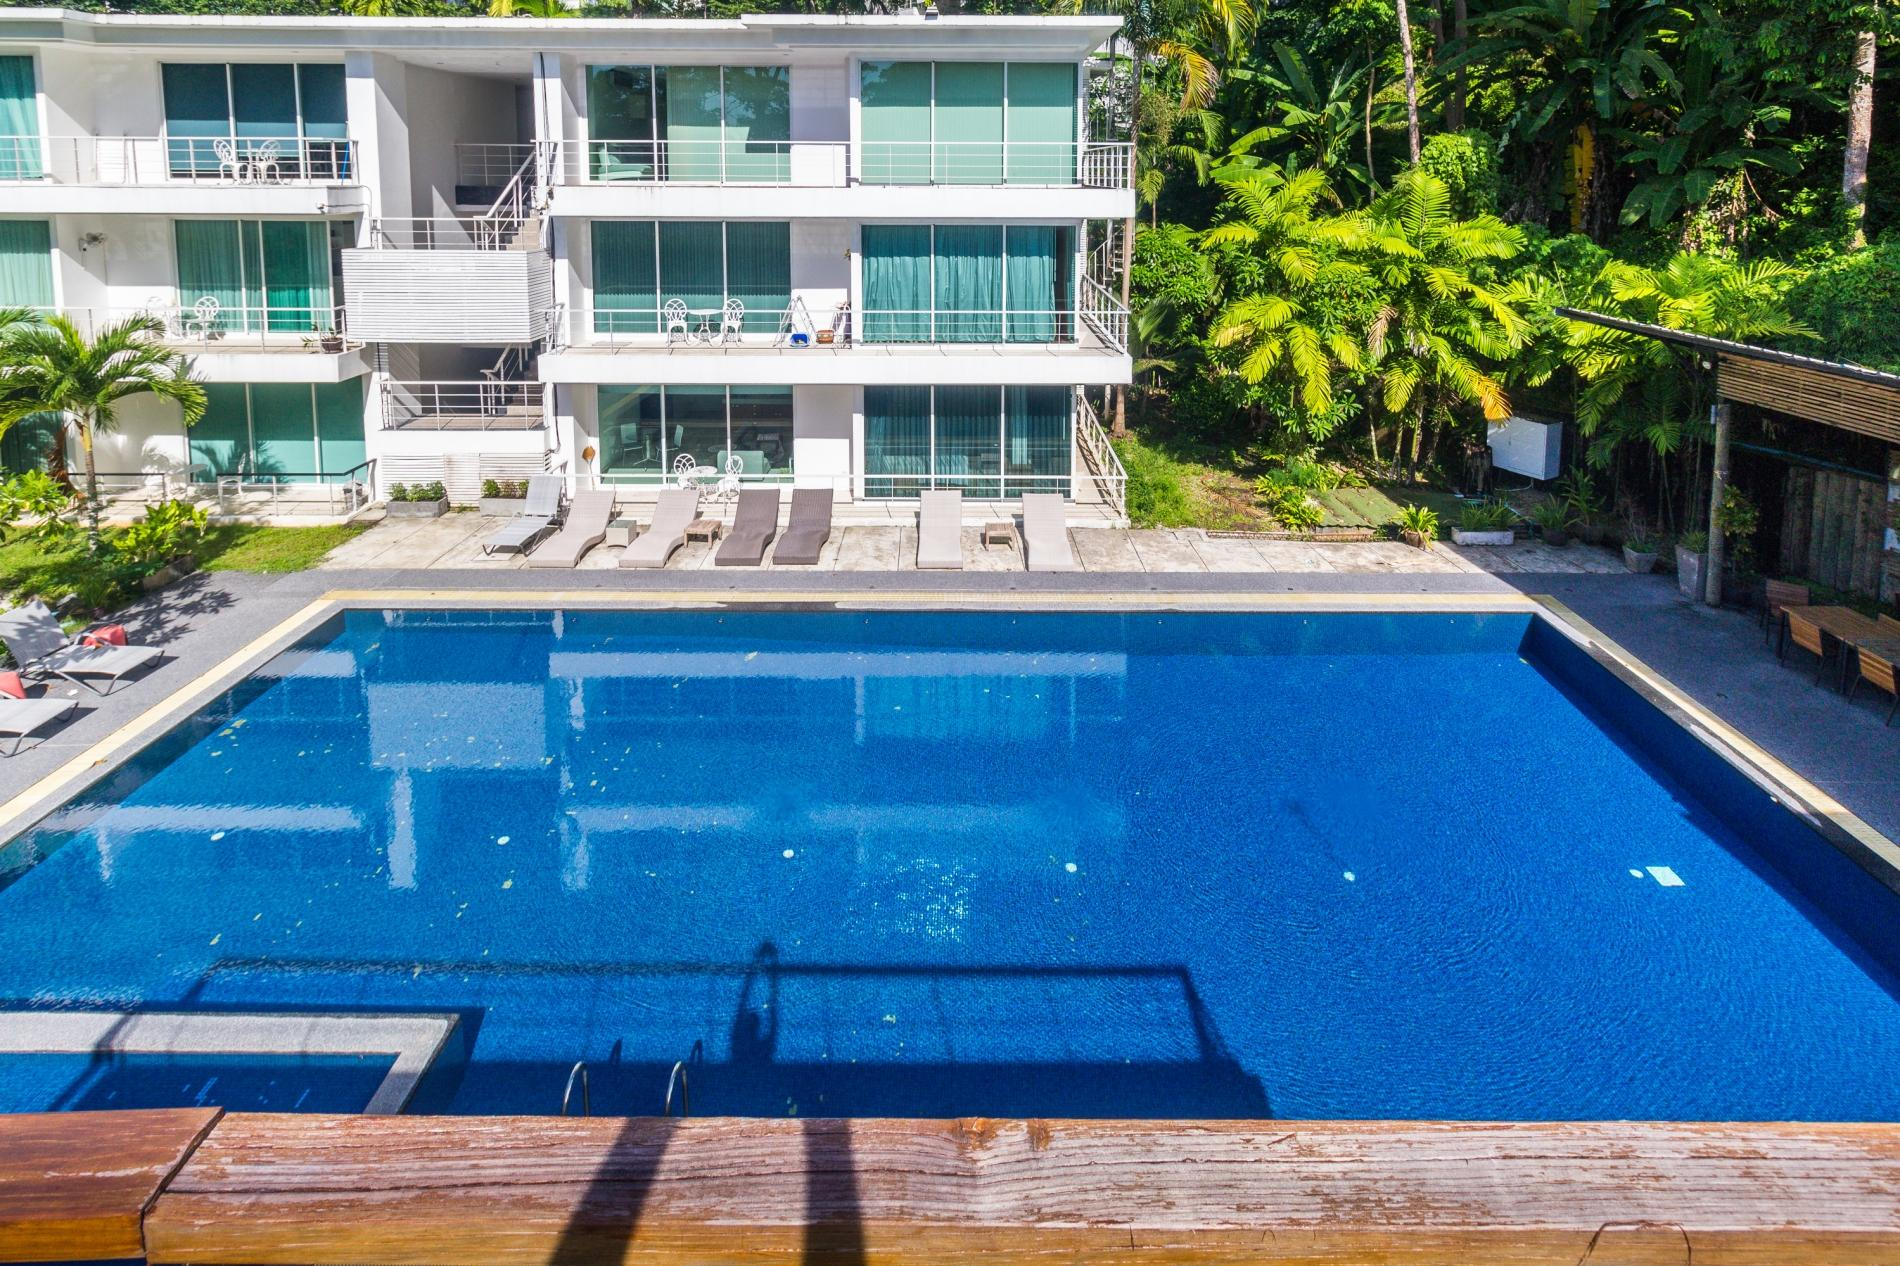 Apartment Zen Space 412 - Family holiday with pools  children area  gym and free shuttle to beach  photo 16936391